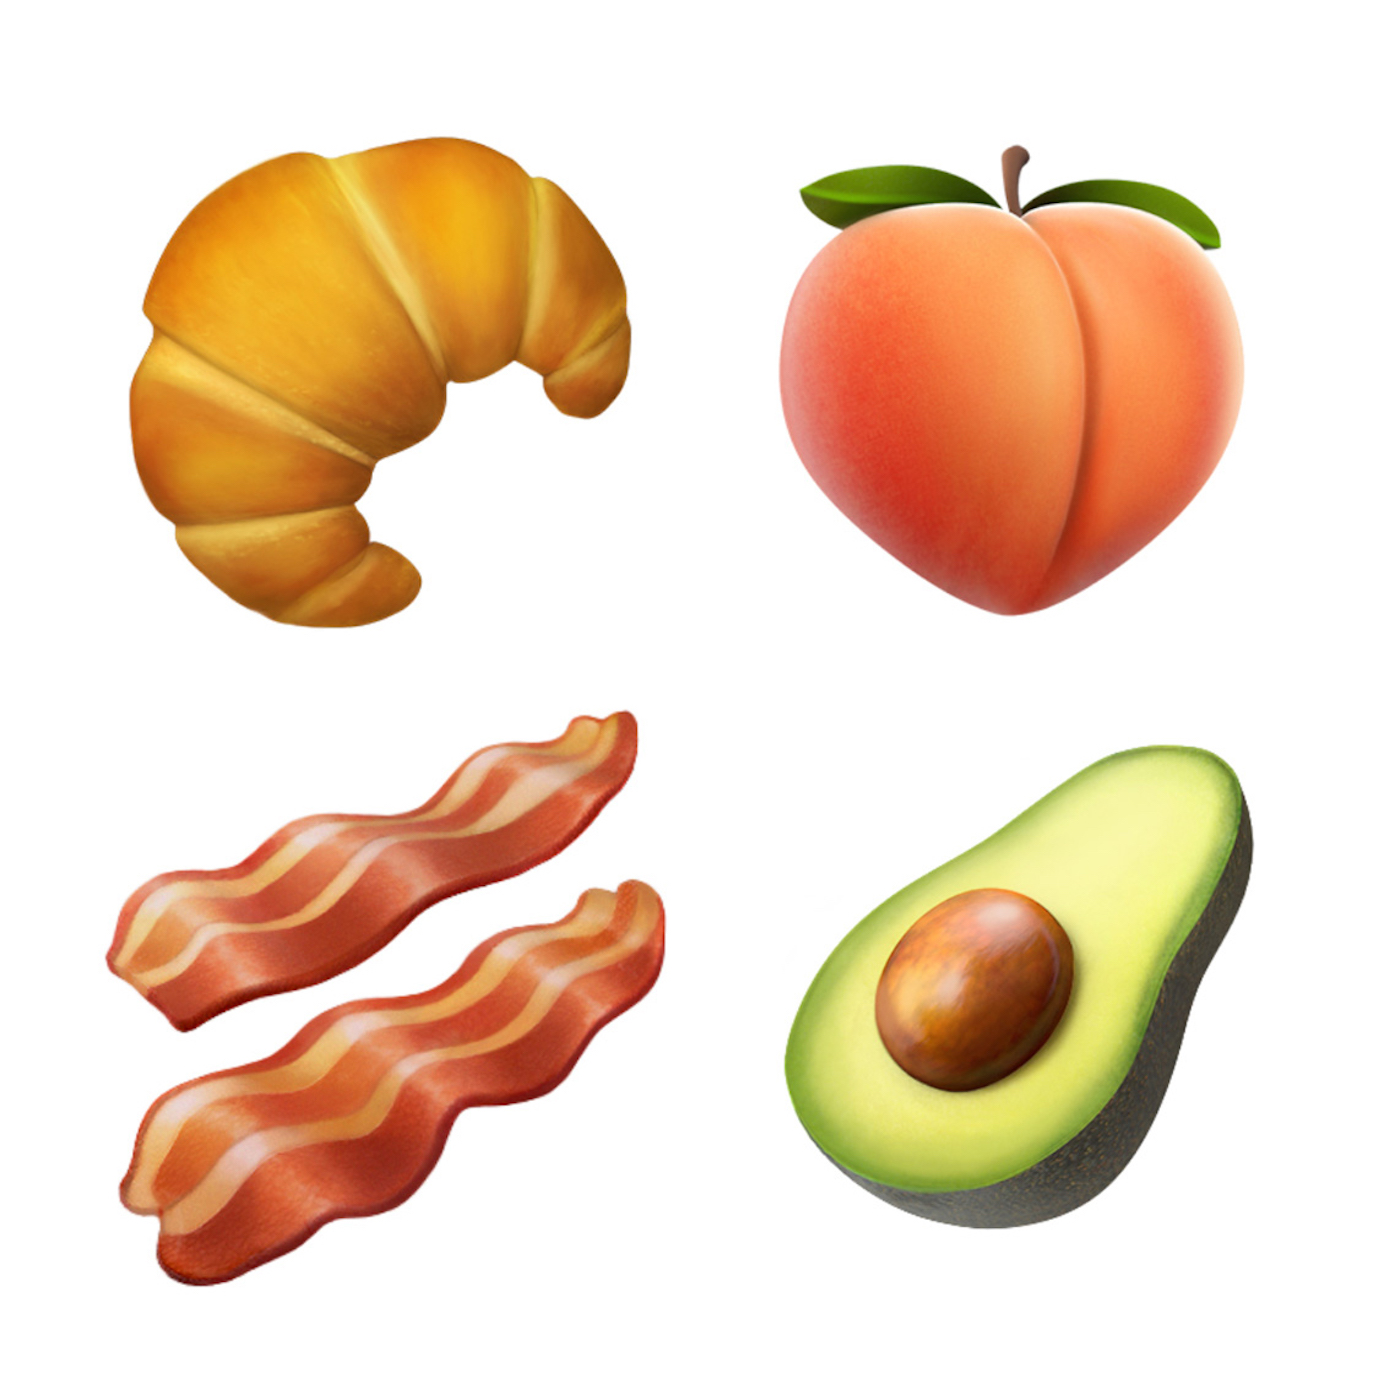 1400x1400 Apple Just Released Over 100 New Emojis Here Are The Best